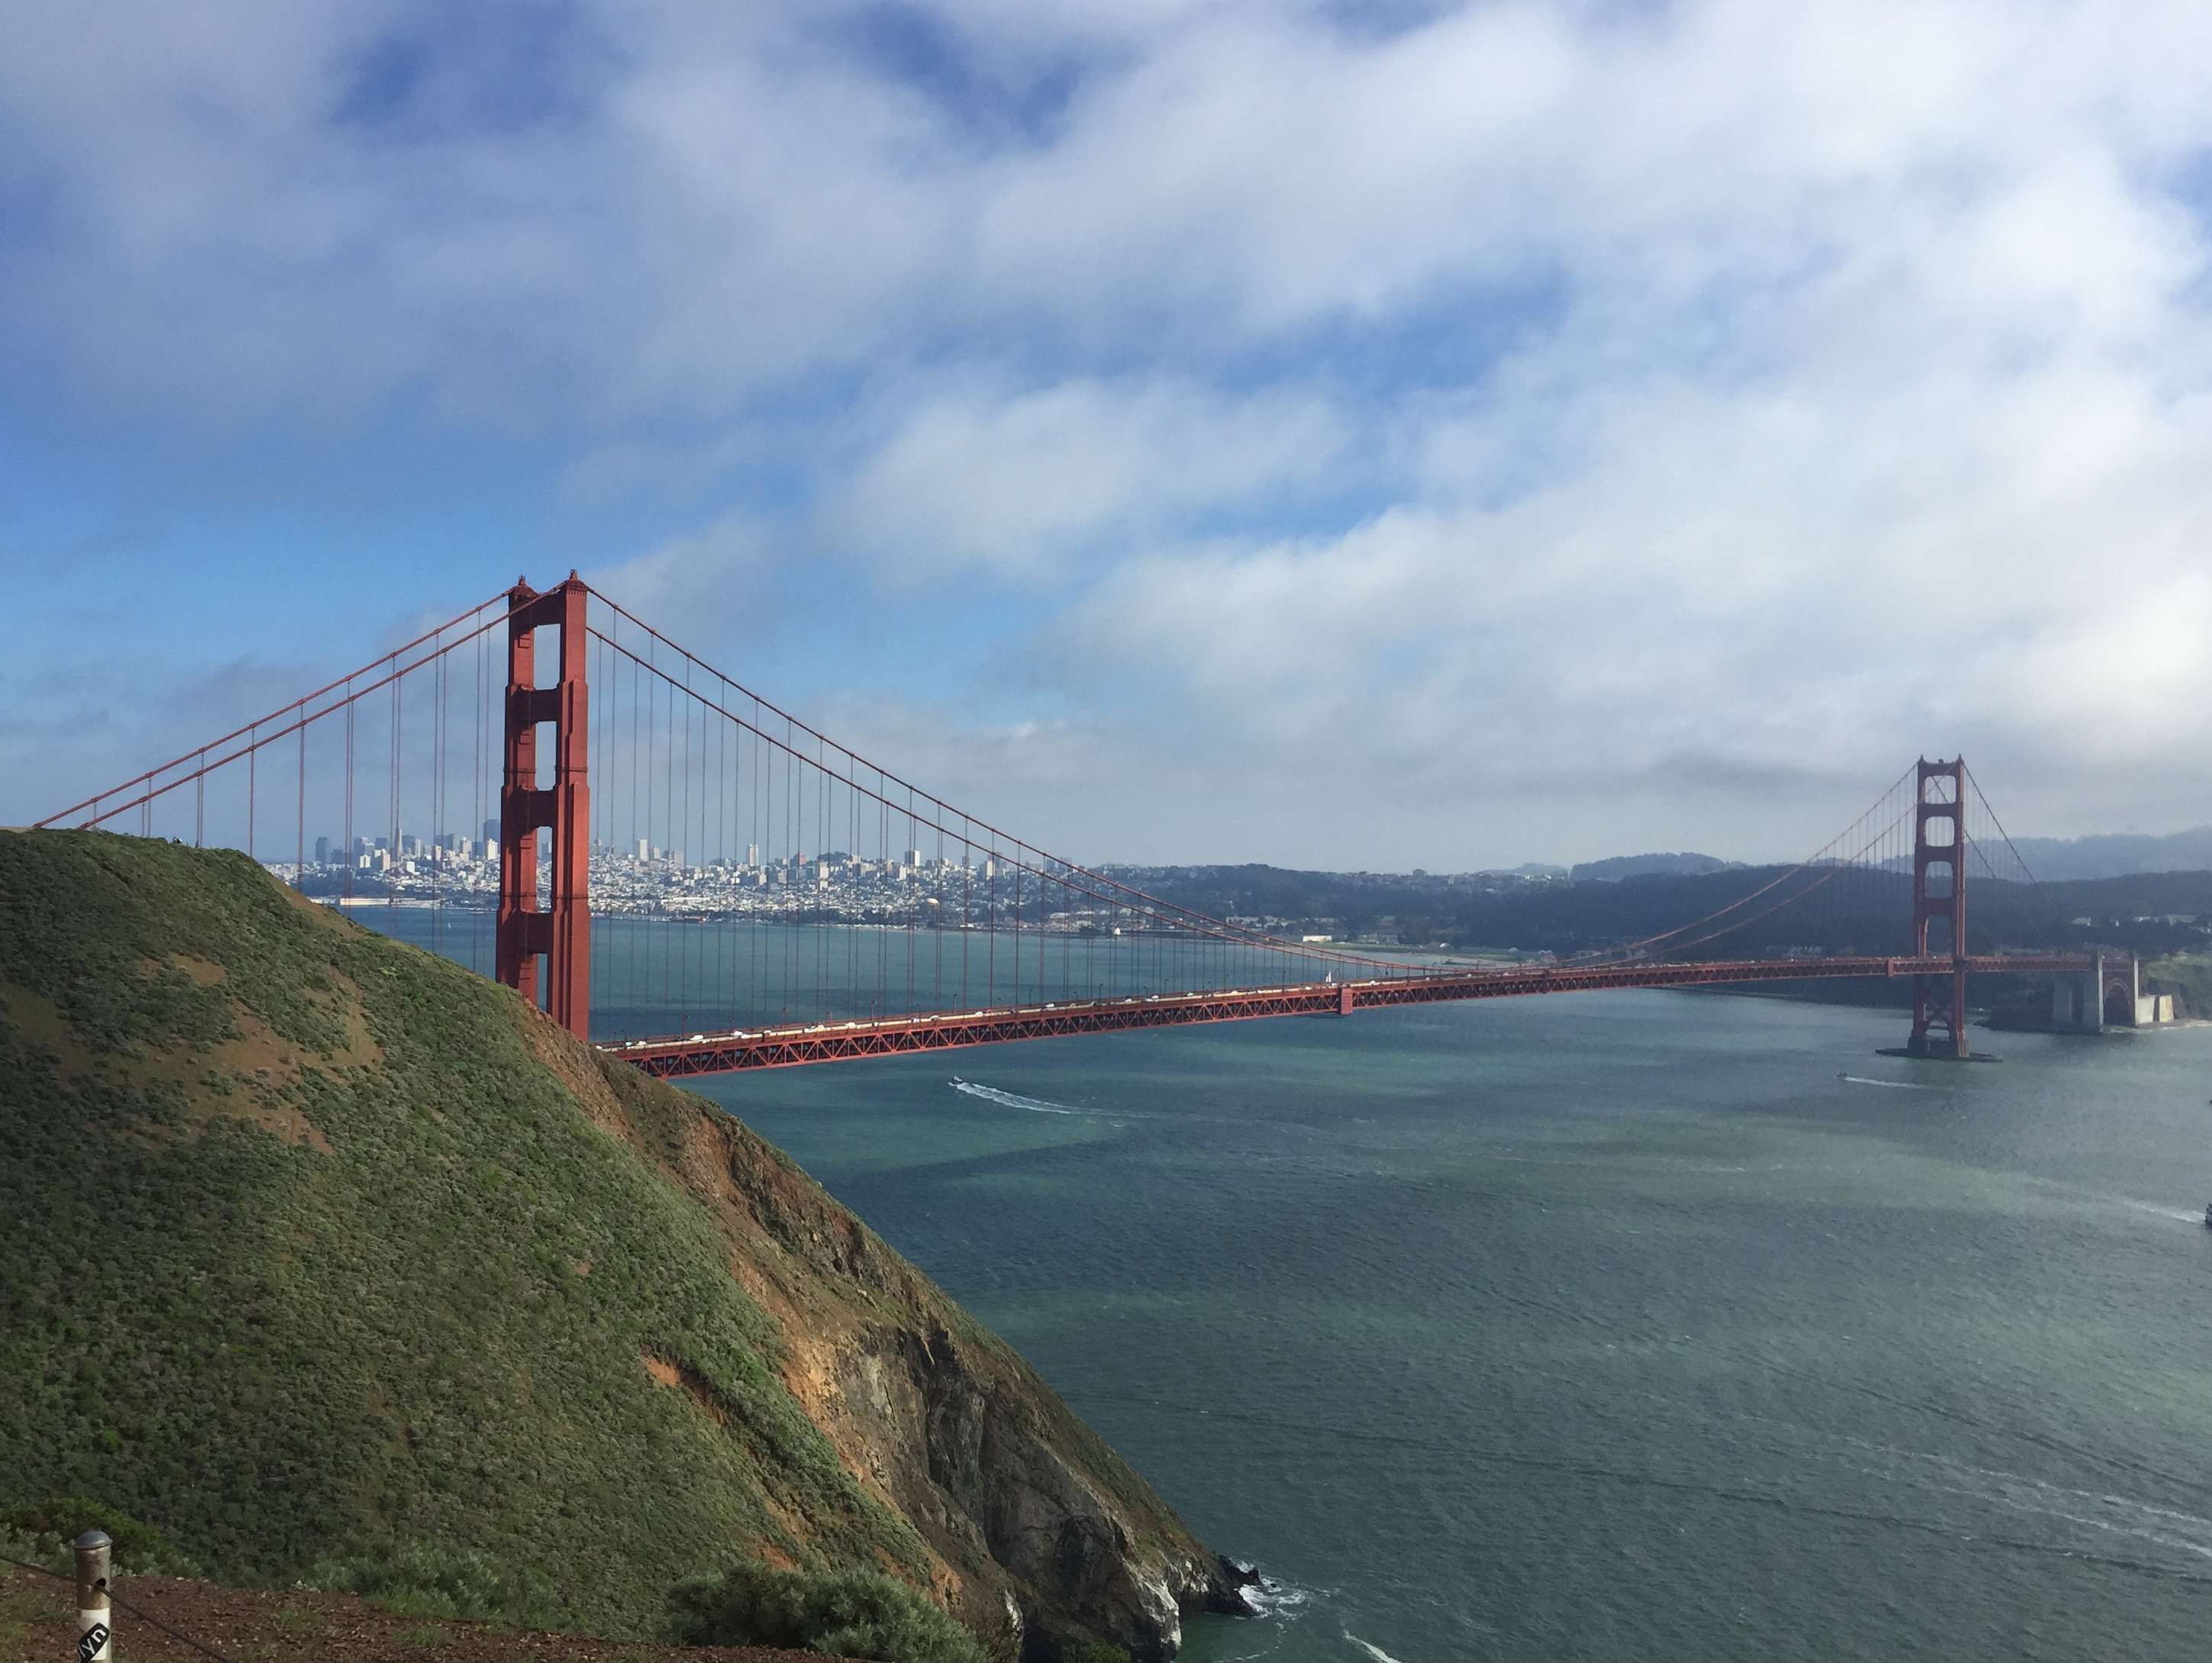 Reasons to visit San Francisco - The Golden Gate Bridge